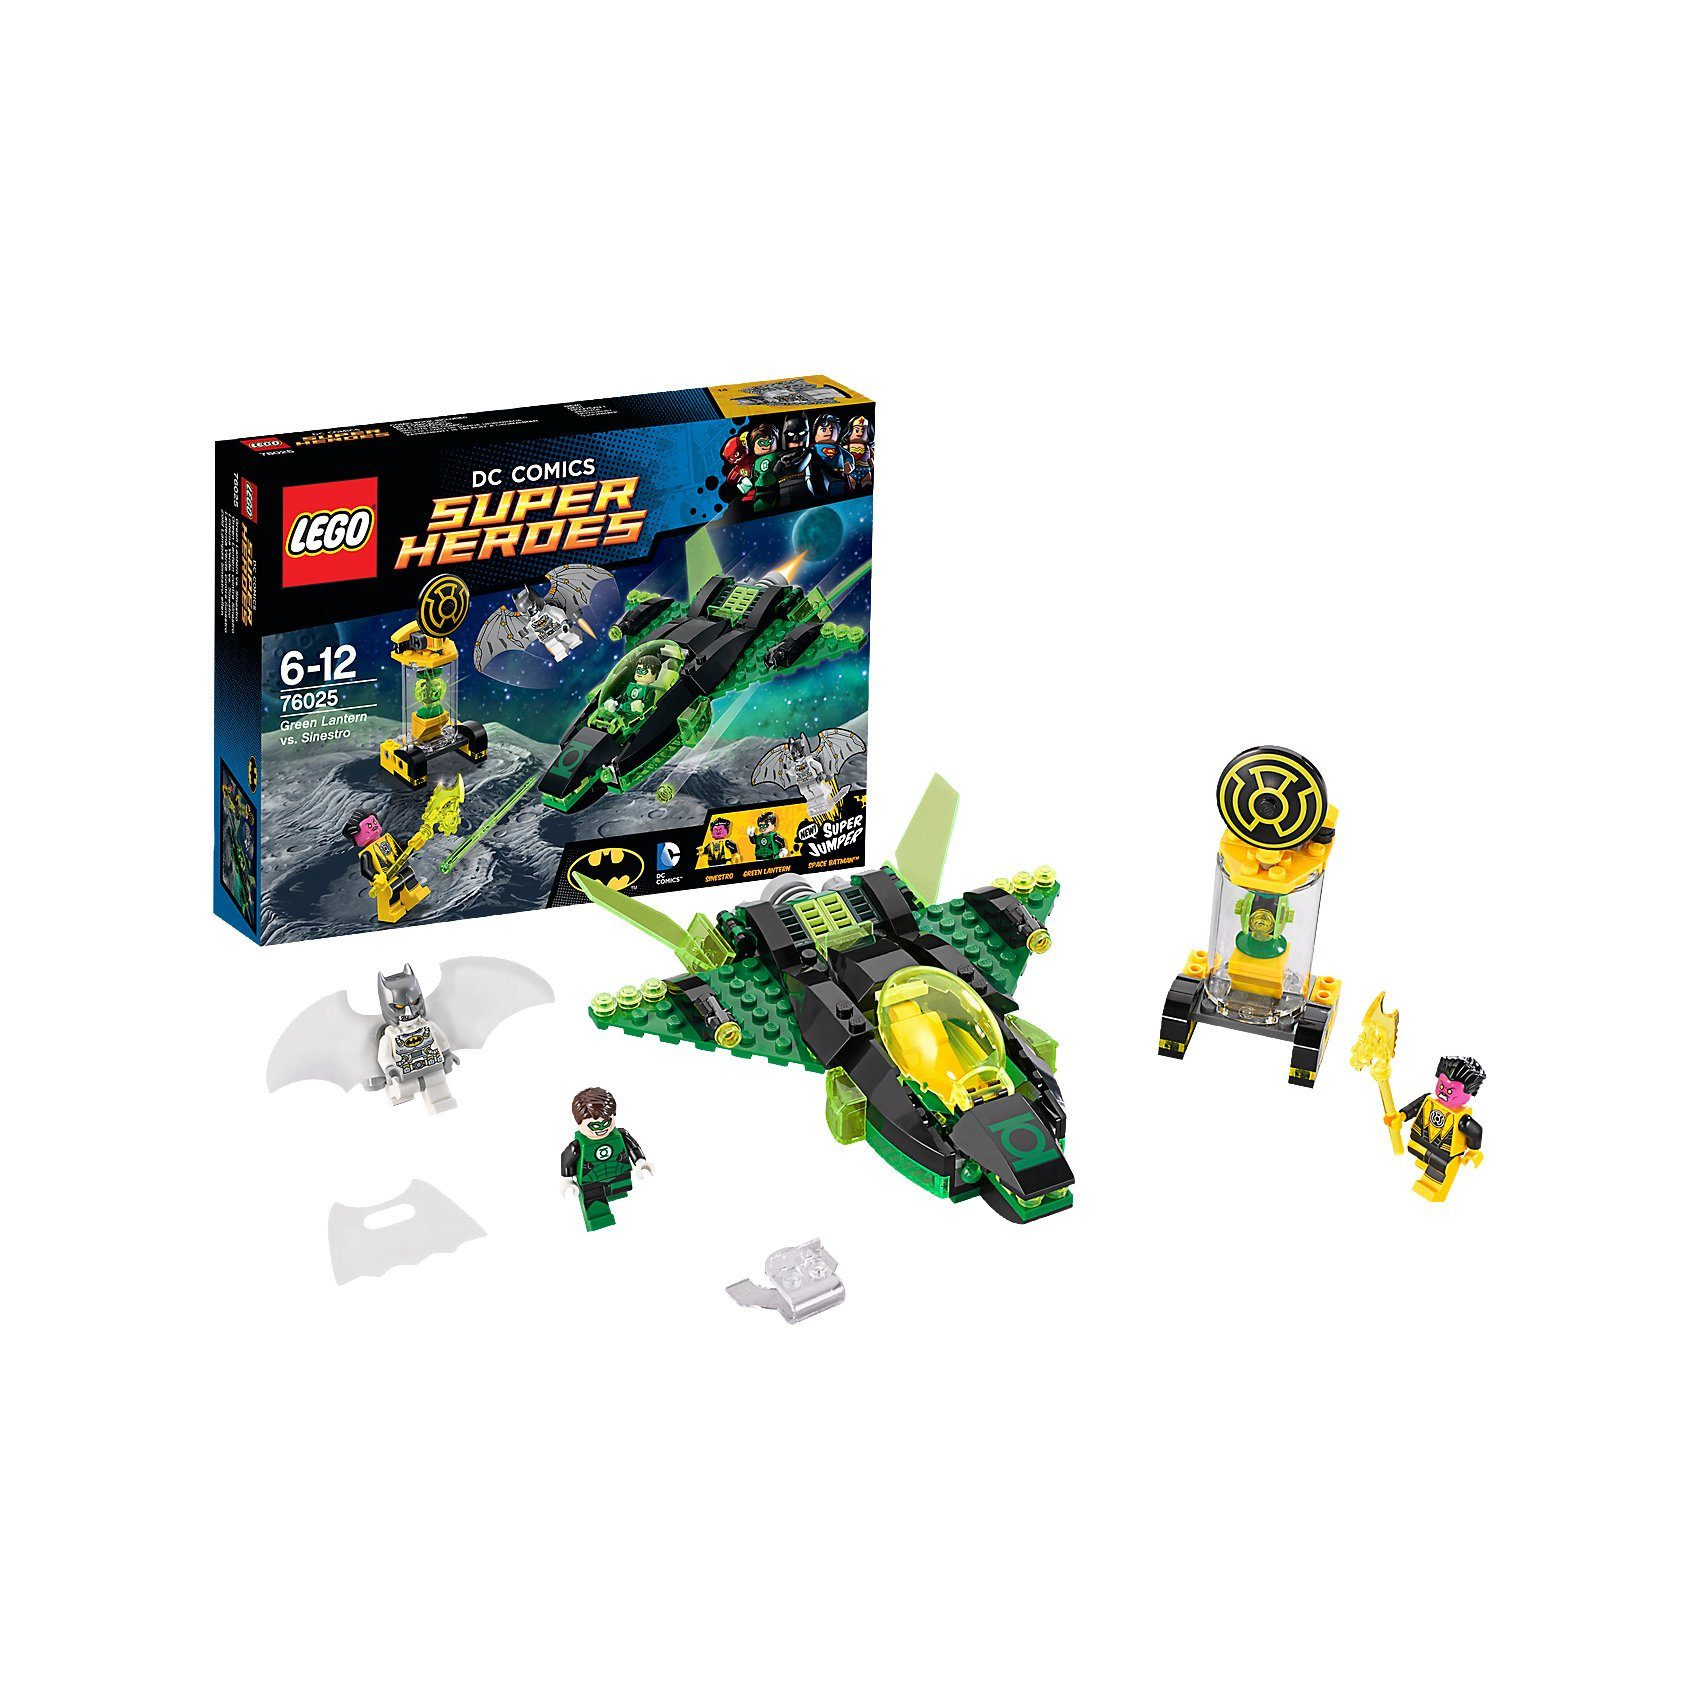 LEGO 76025 Super Heroes Batman: Green Lantern vs. Sinestro